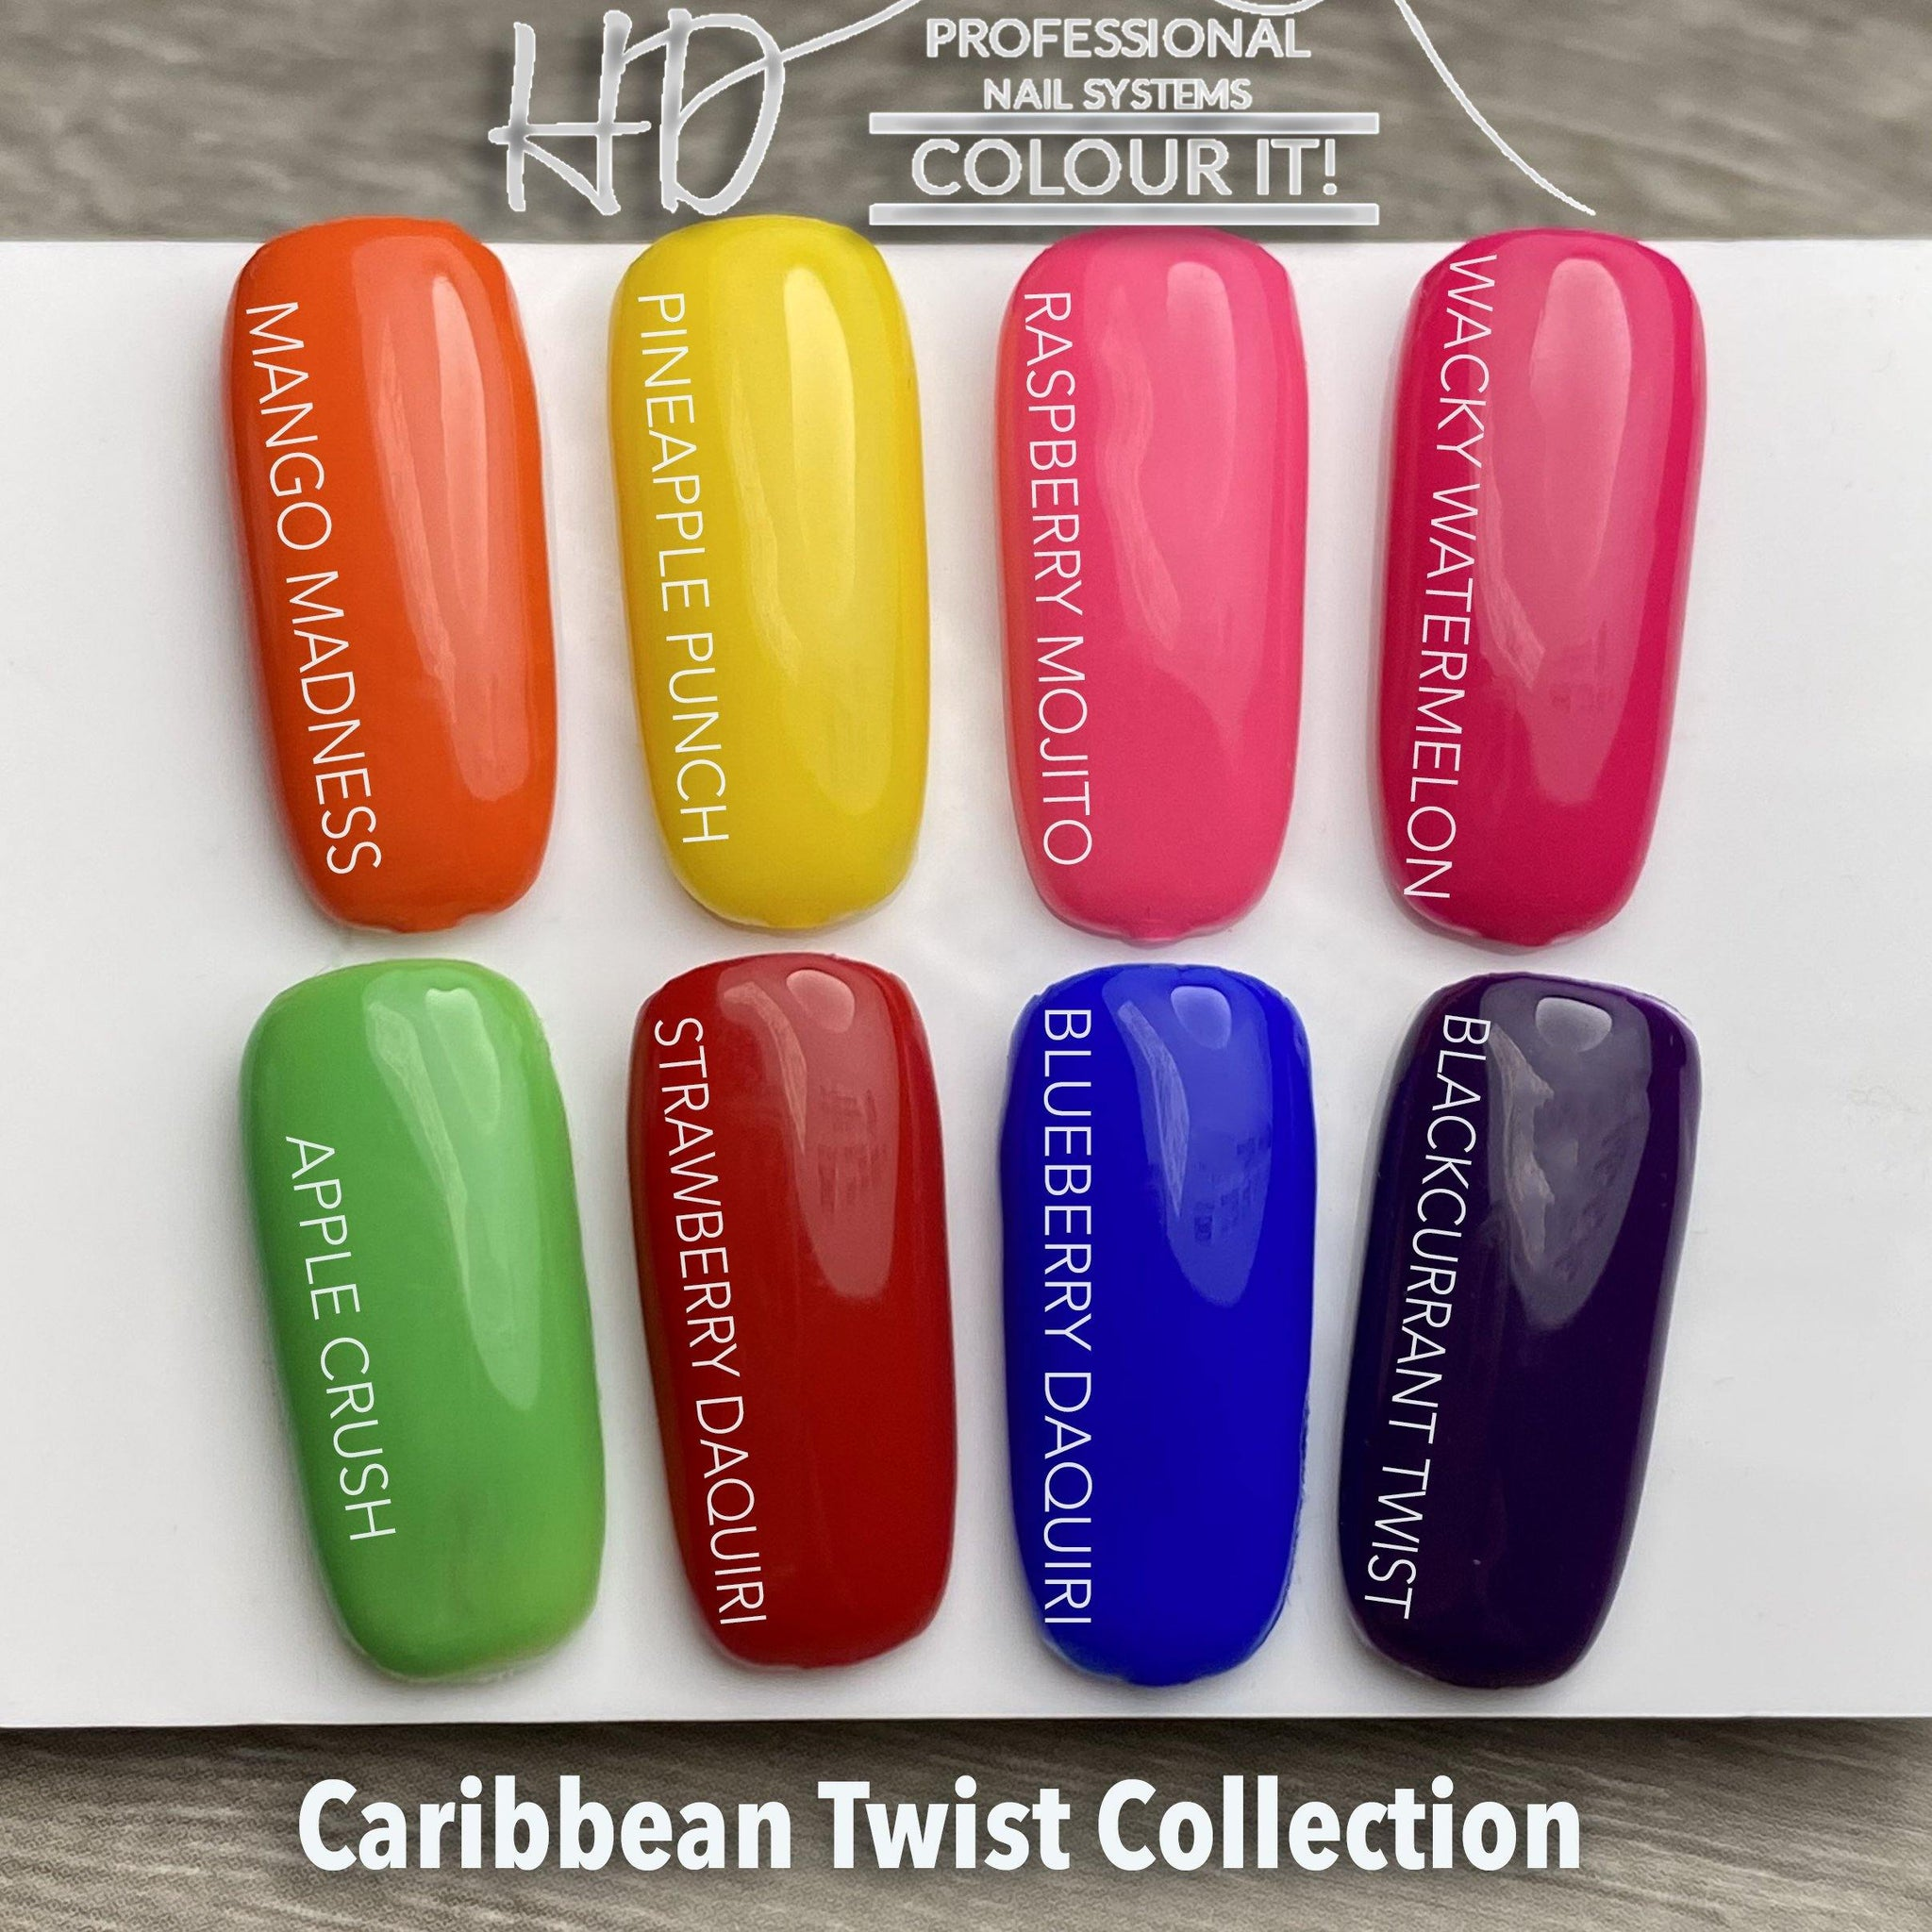 HD Colour It! Caribbean Twist Collection (all 8 colors 15ml)